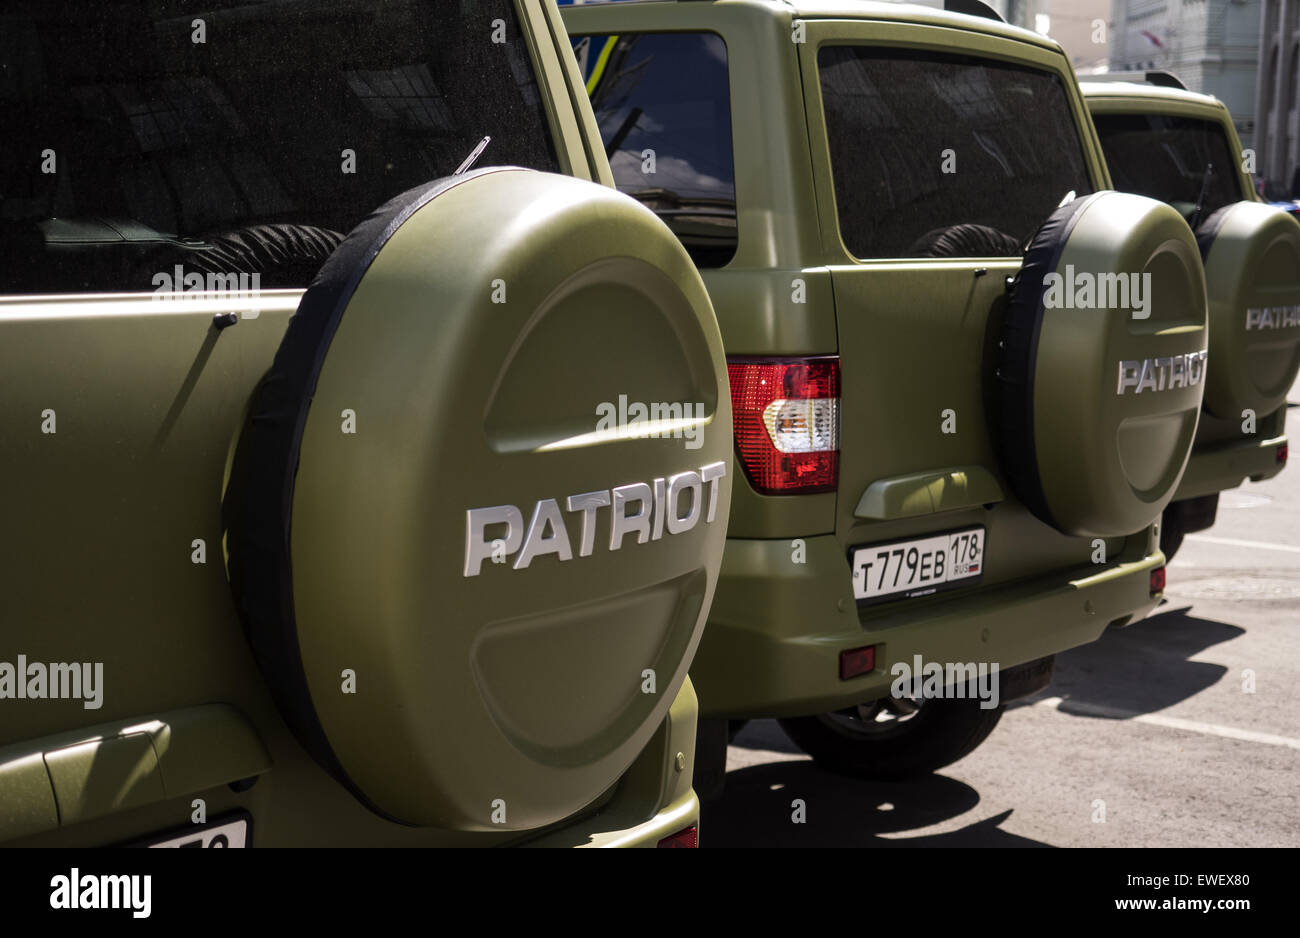 Moscow, Russia. 14th June, 2015. June 14, 2015: A number of off-road military vehicles of Russian brands ''Patriot'' Stock Photo